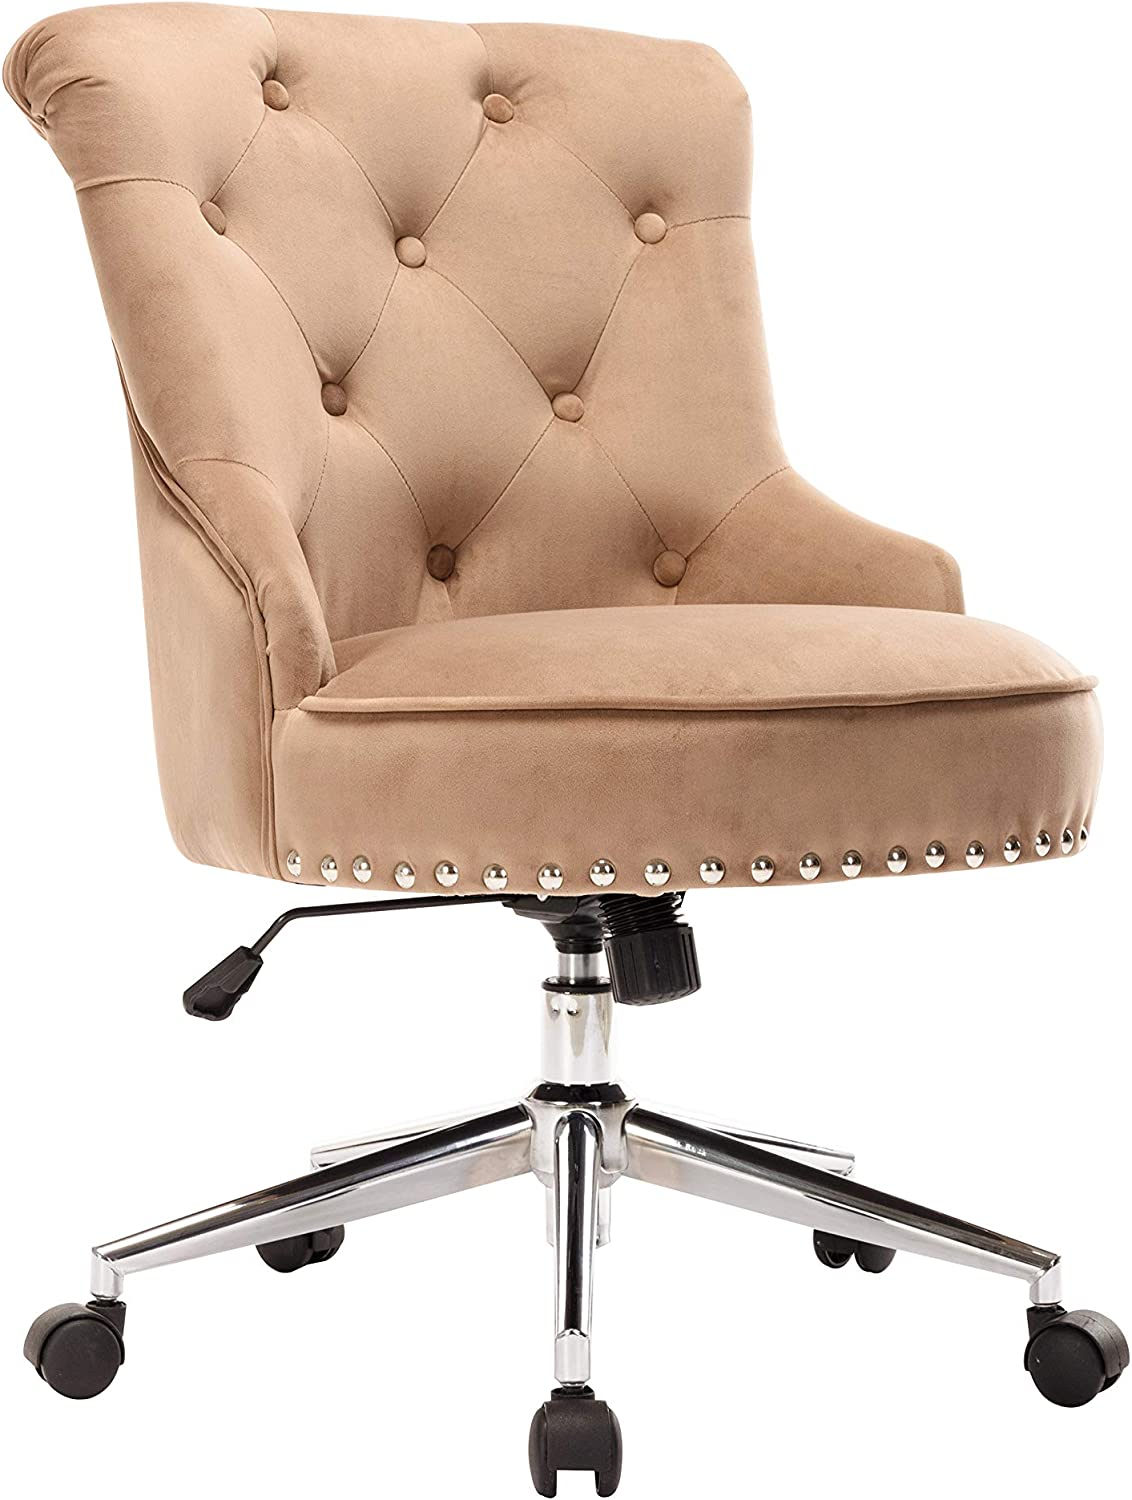 Porthos Home Jaron Office Chair Quality inspection Head Wingback OFFicial site with Nail Tufted